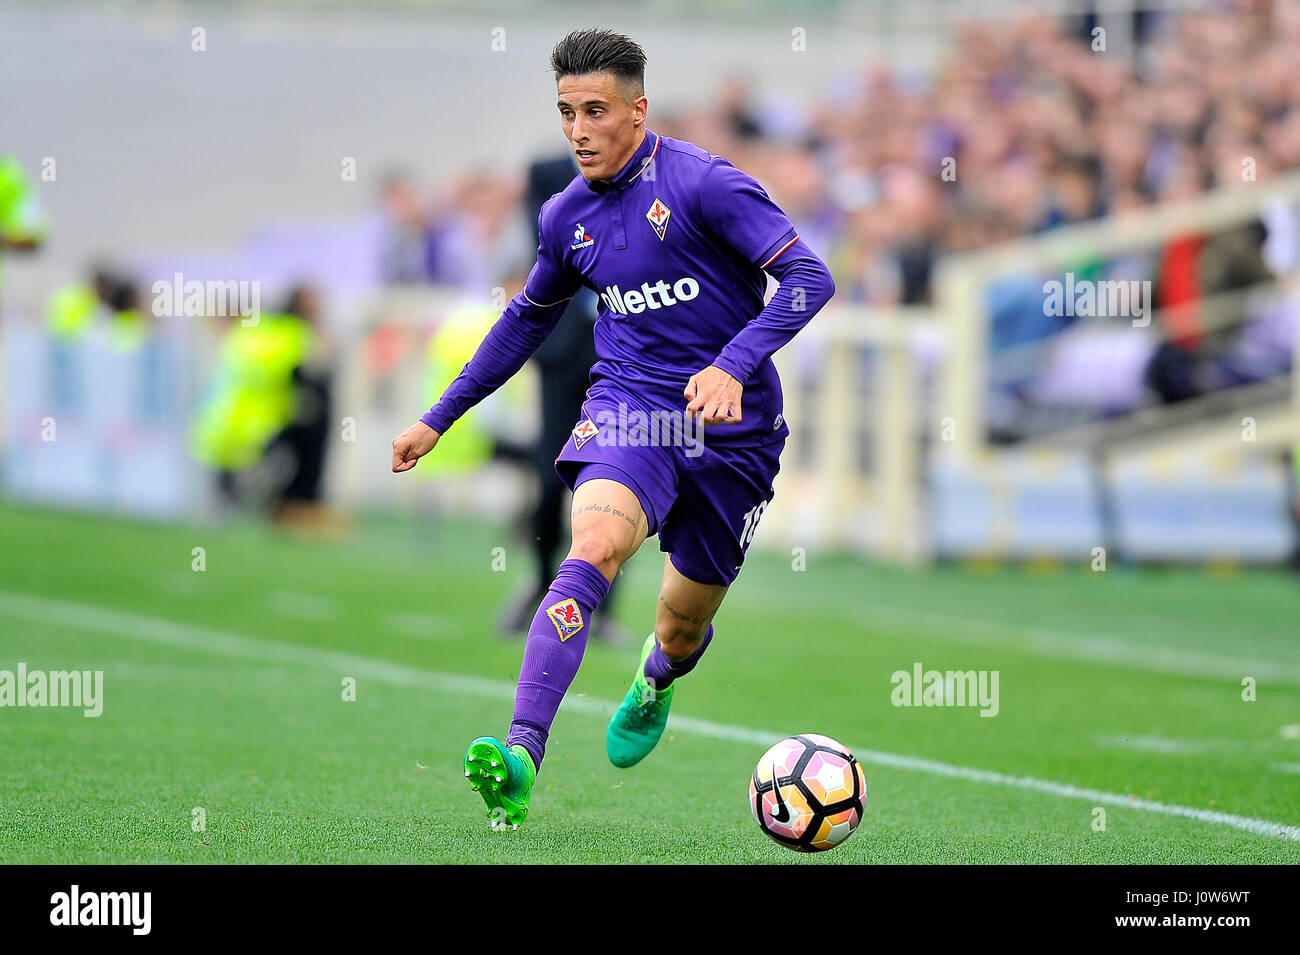 15th Apr 2017 Acf Fiorentinas Cristian Tello In Action During The Italian Serie A Soccer Match Between Fiorentina And Empoli Fc At Artemio